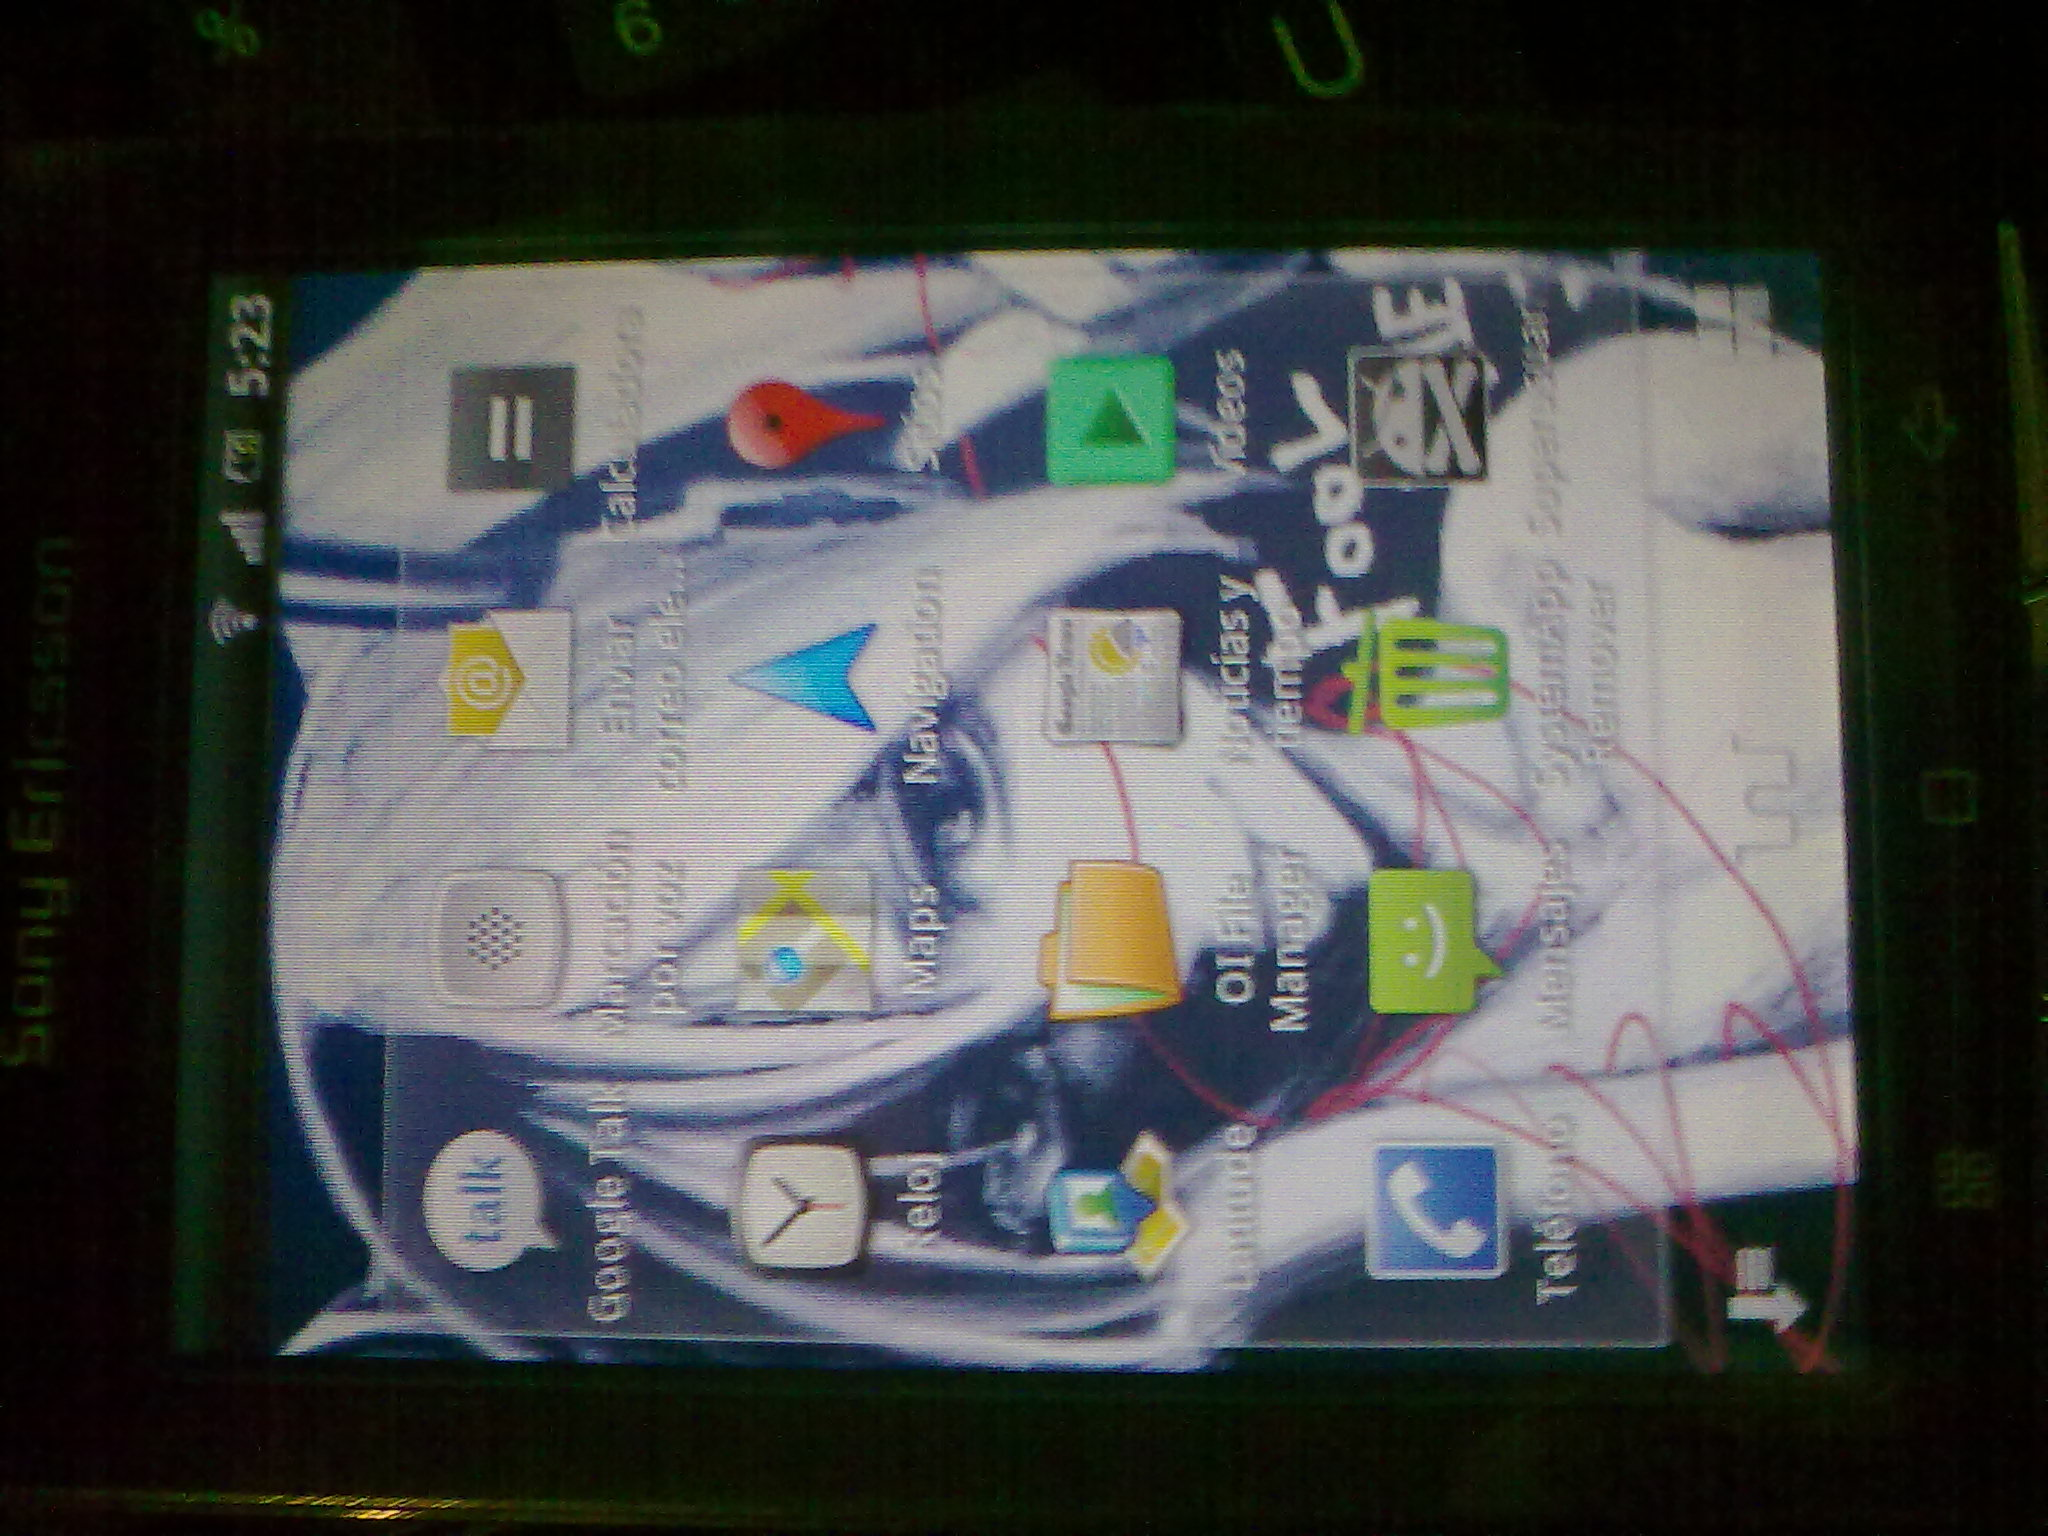 Como ser user root en Xperia X8